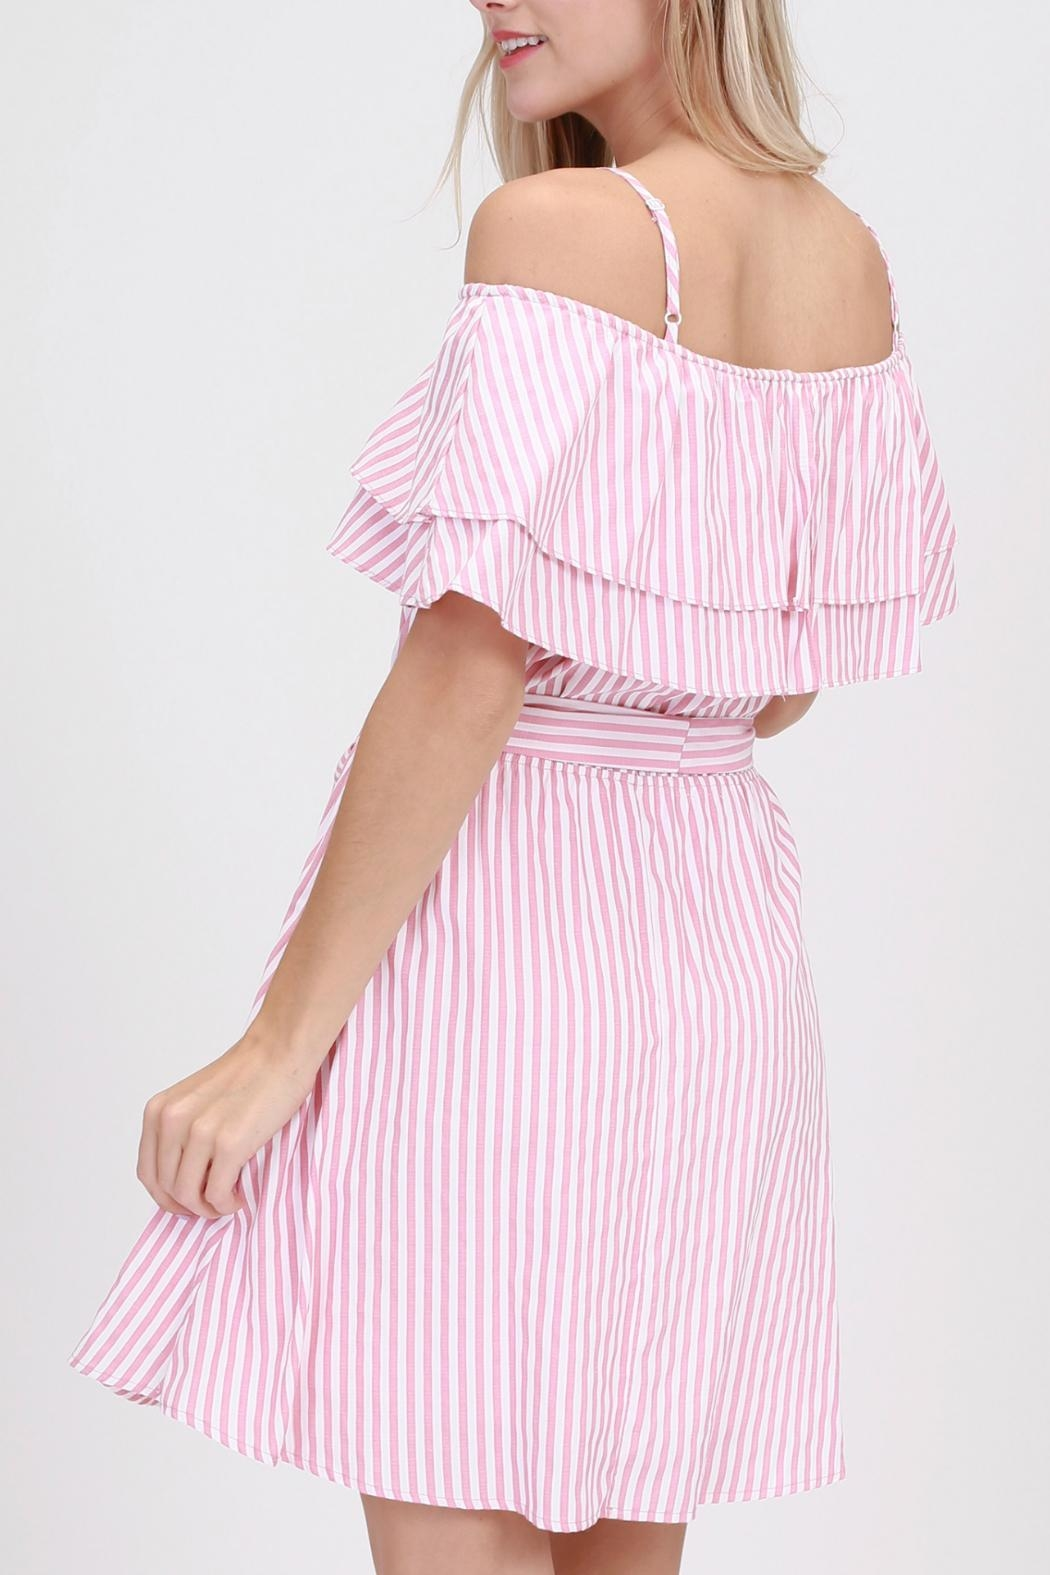 ALB Anchorage Pink-Striped Ruffle Dress - Side Cropped Image